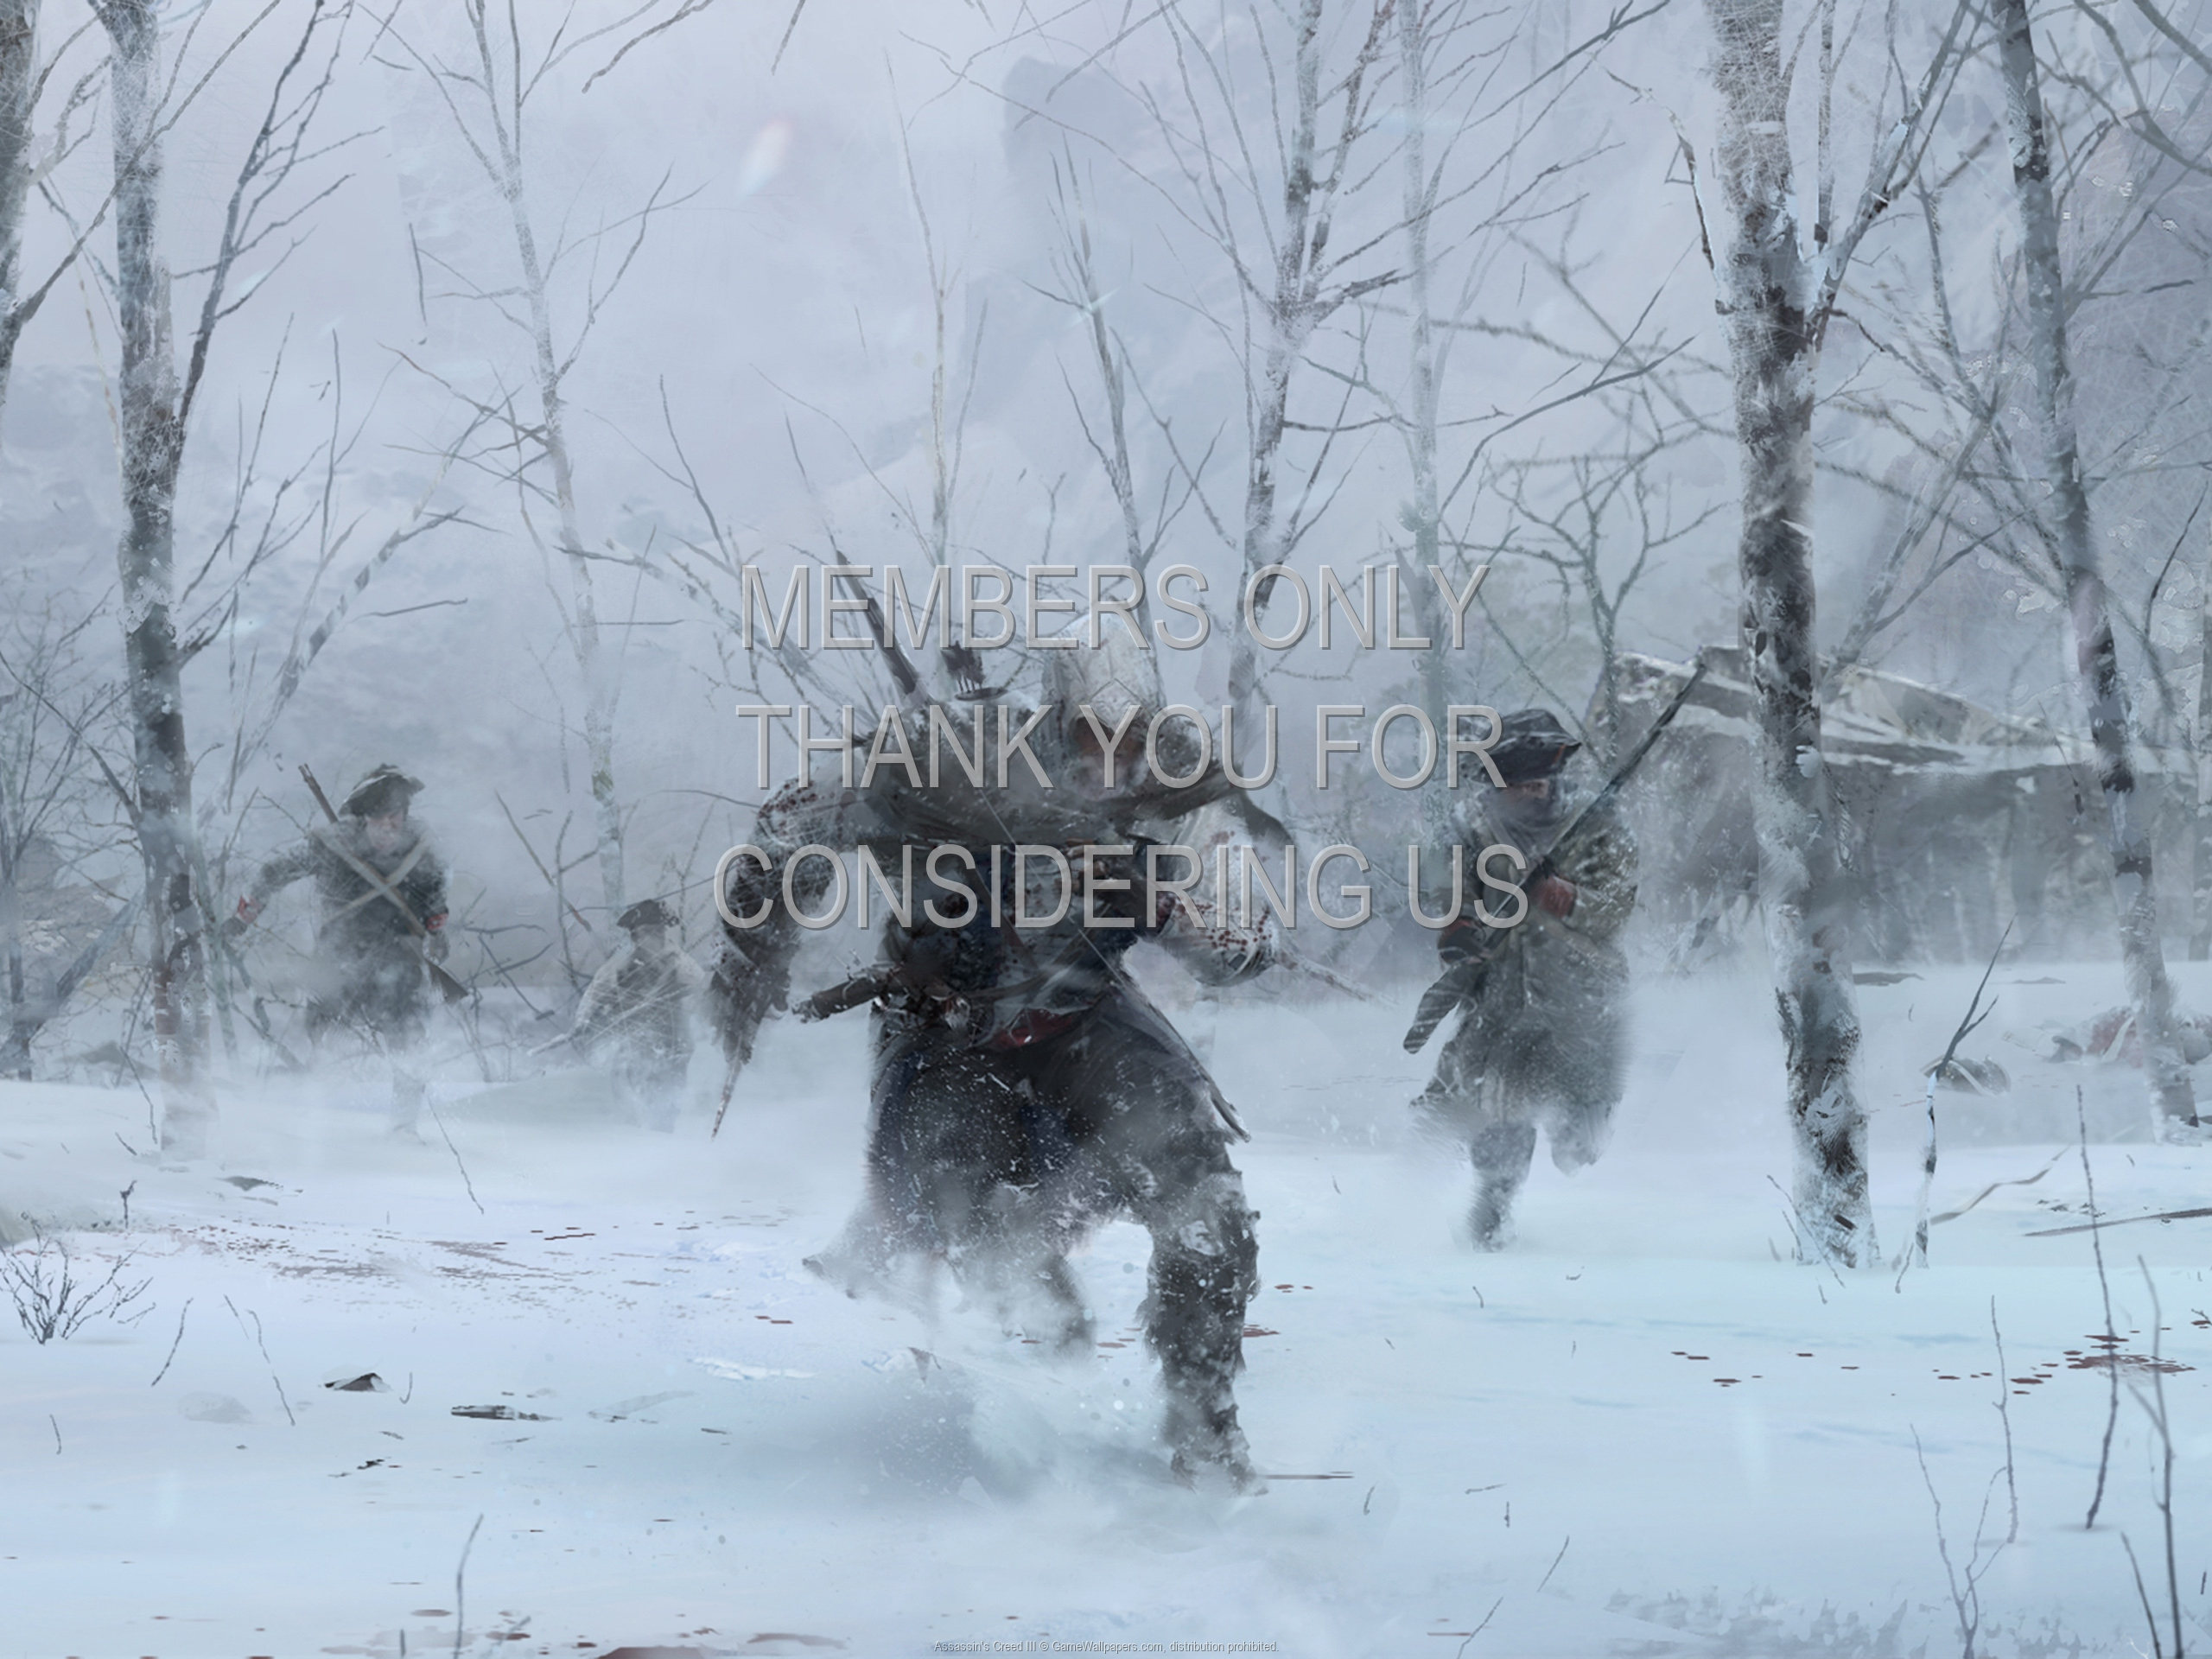 Assassin's Creed III 1920x1080 Mobile wallpaper or background 08